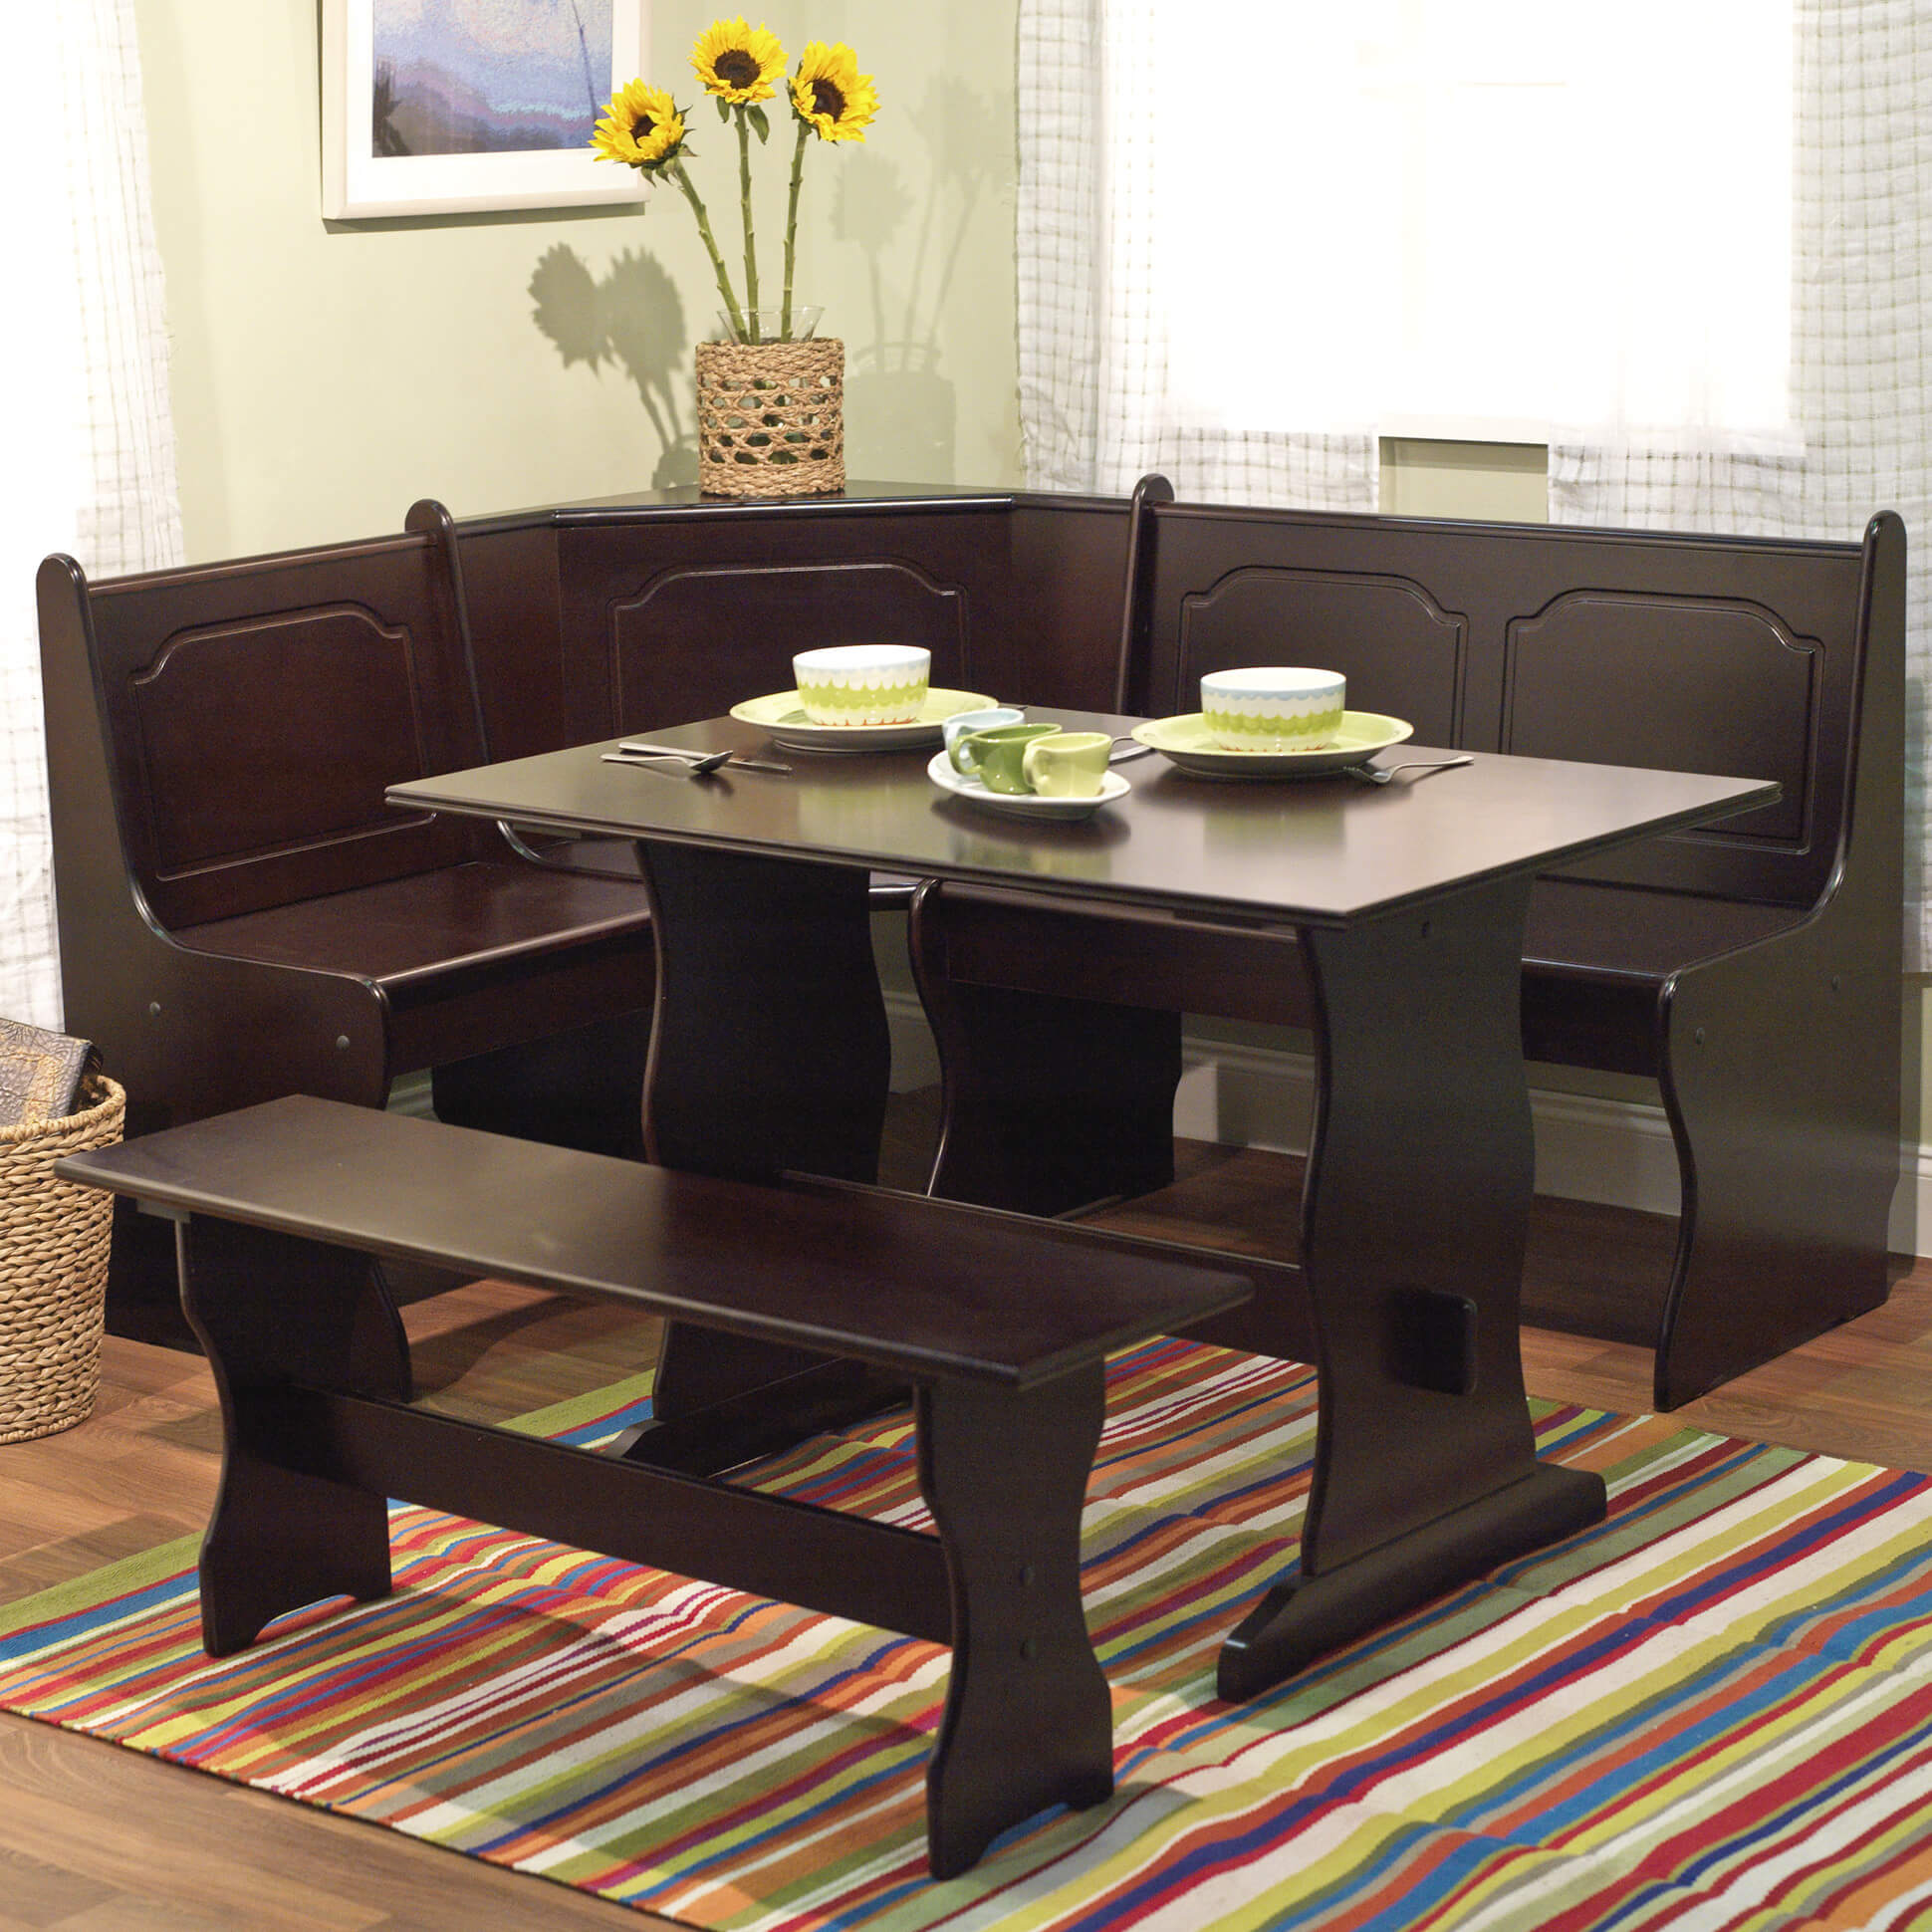 This 3 Piece Breakfast Nook Is An All Wood Manufactured Dark